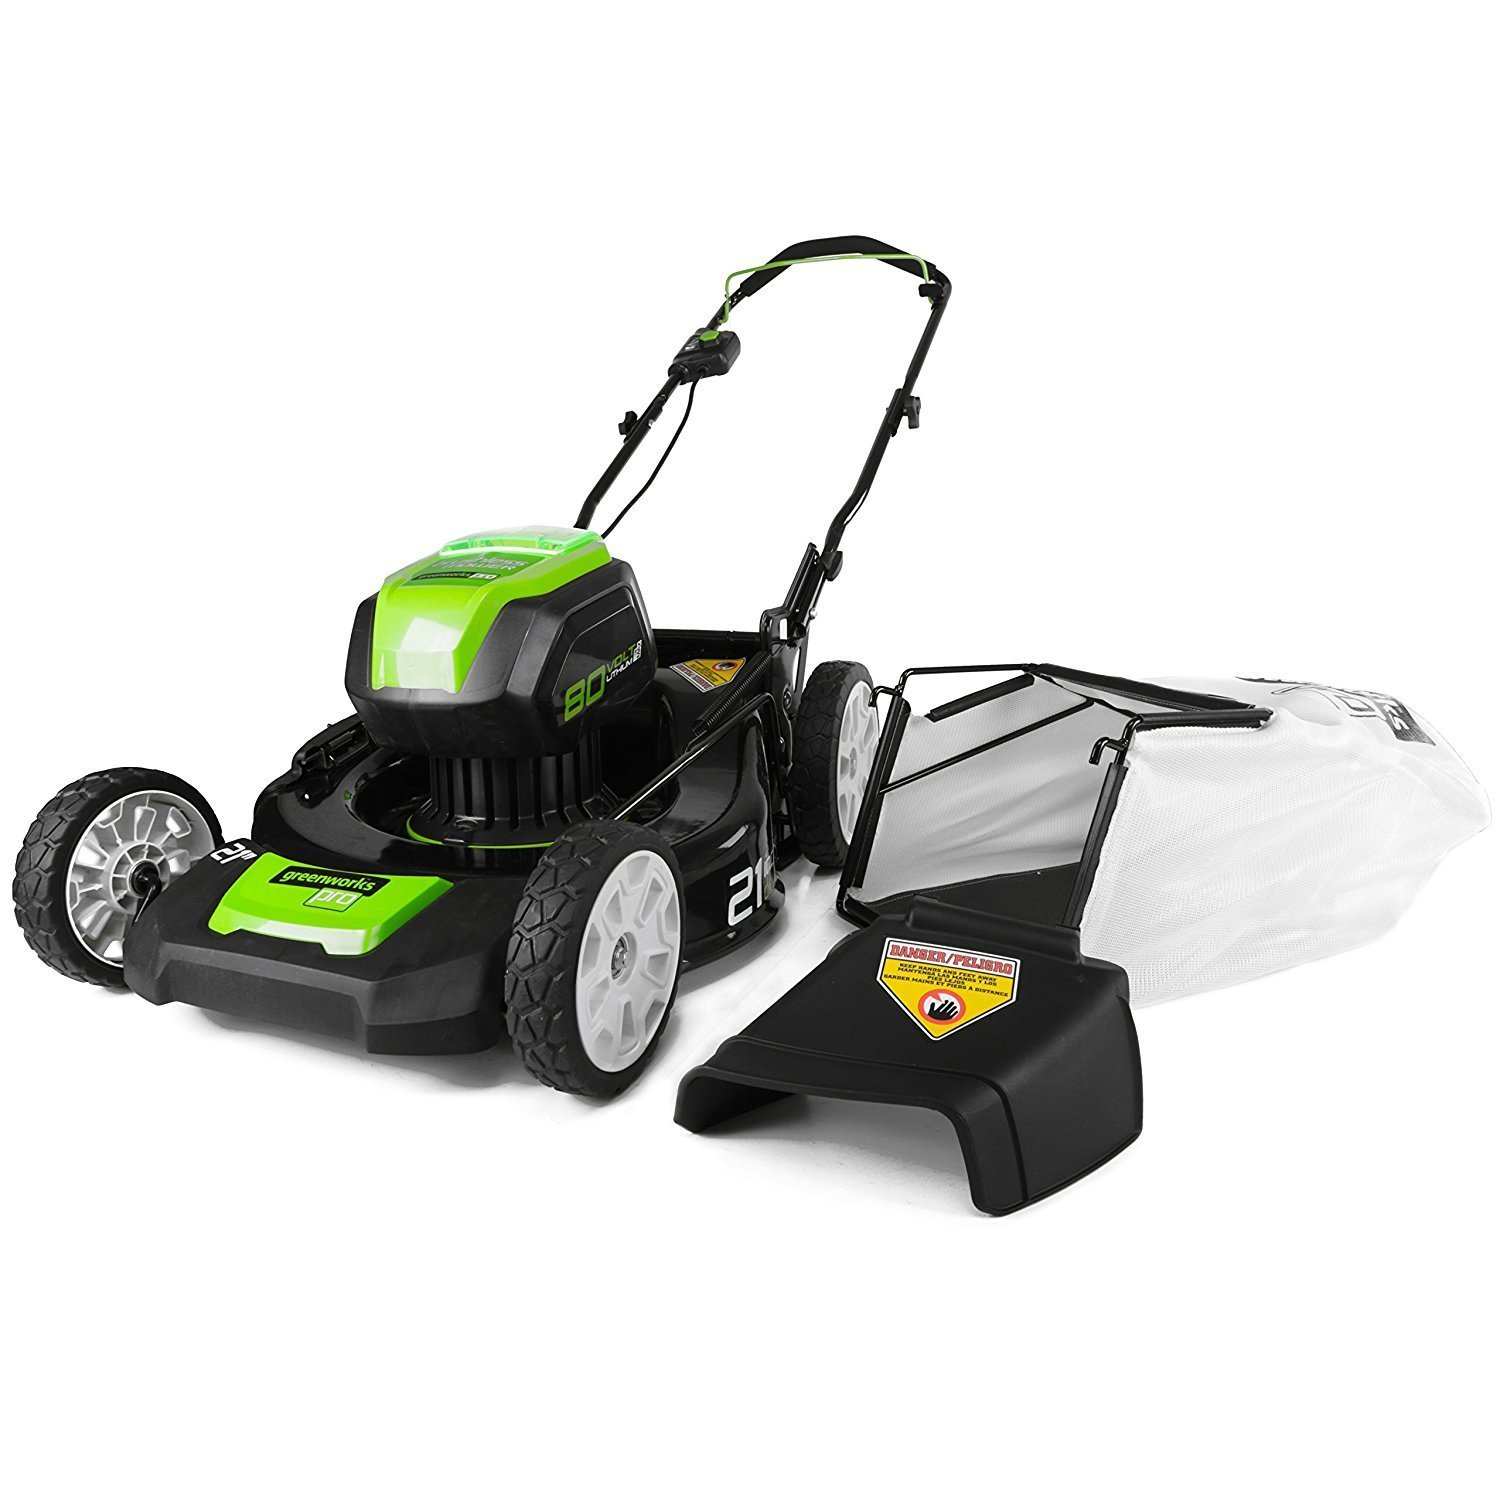 Best Self Propelled Lawn Mower Under 300 Home Furniture